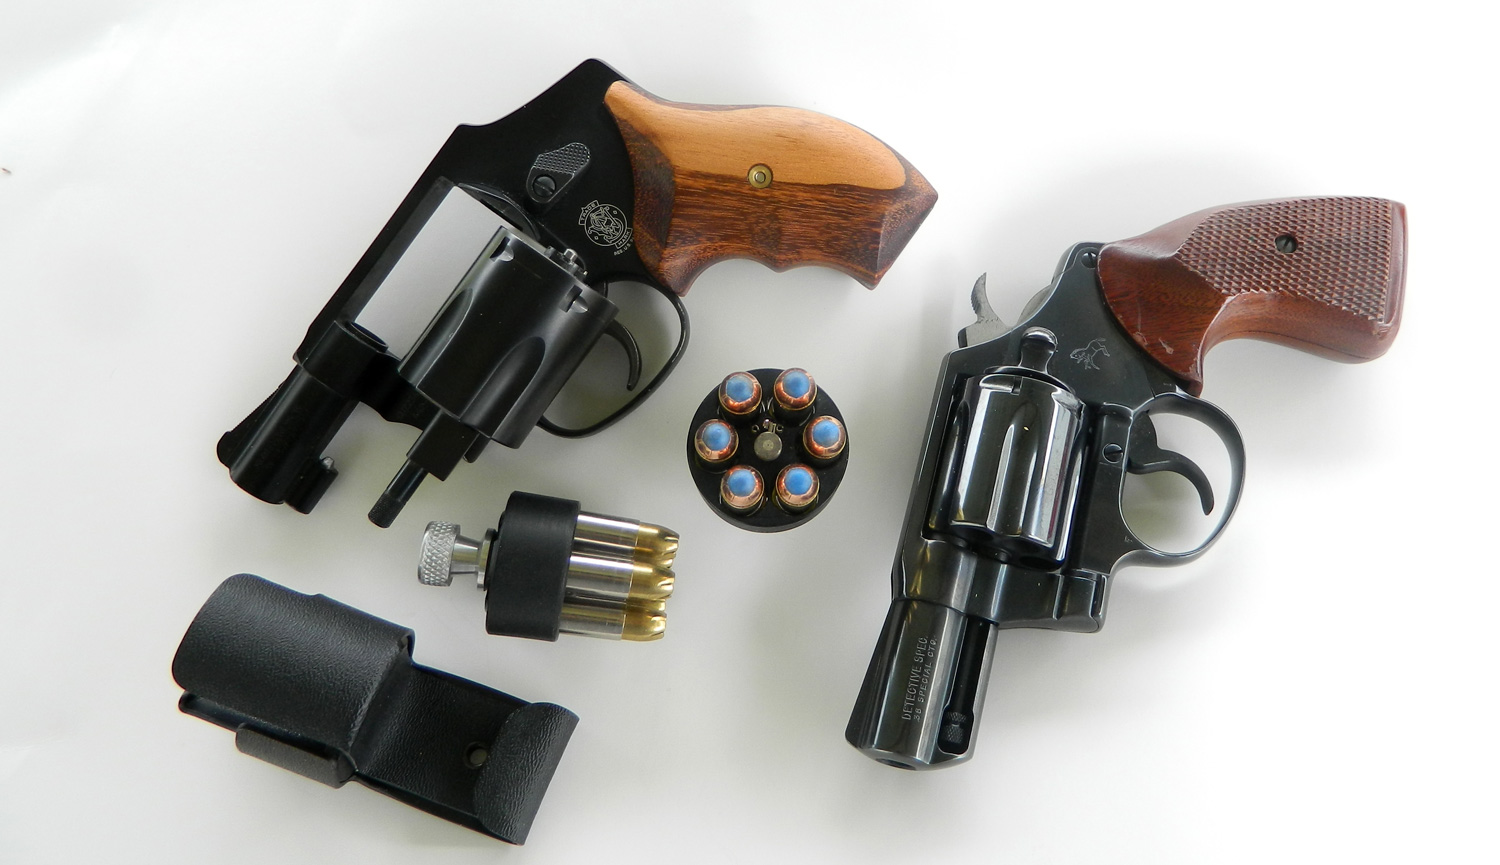 Snub Nose Magnum Revolvers — Unequivocal - The Shooter's Log